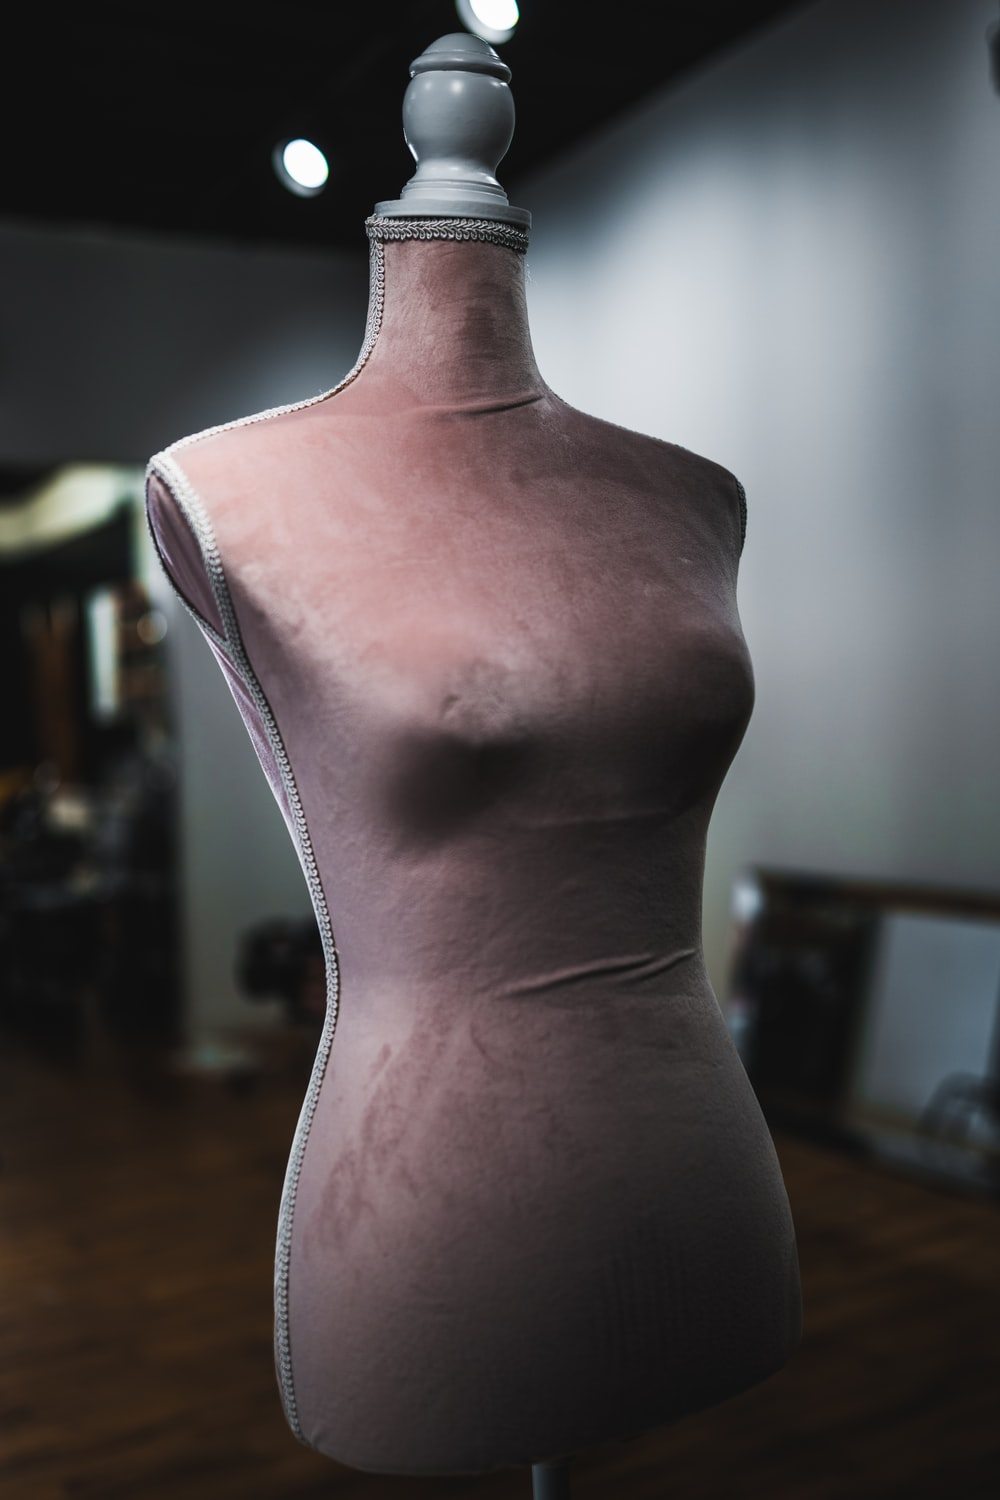 shallow focus photography of body mannequin